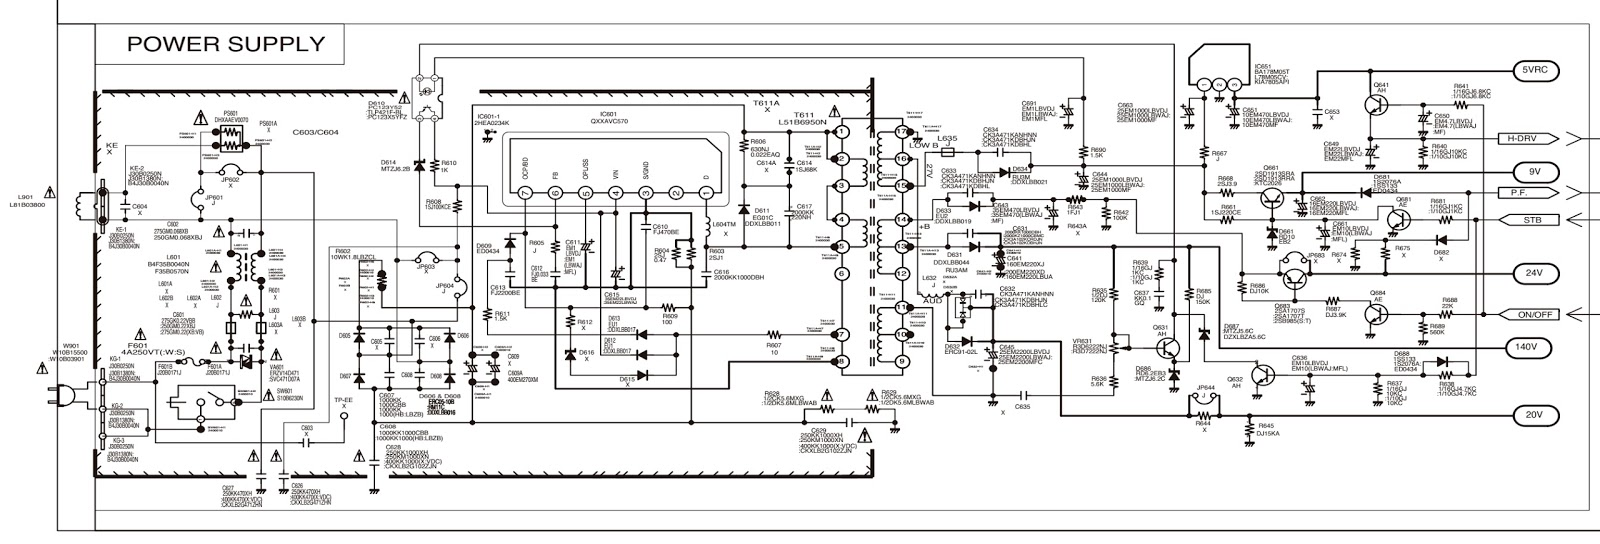 hight resolution of tv power schematic wiring library panasonic tv schematics sanyo c29lf41 crt tv circuit diagram rh xn